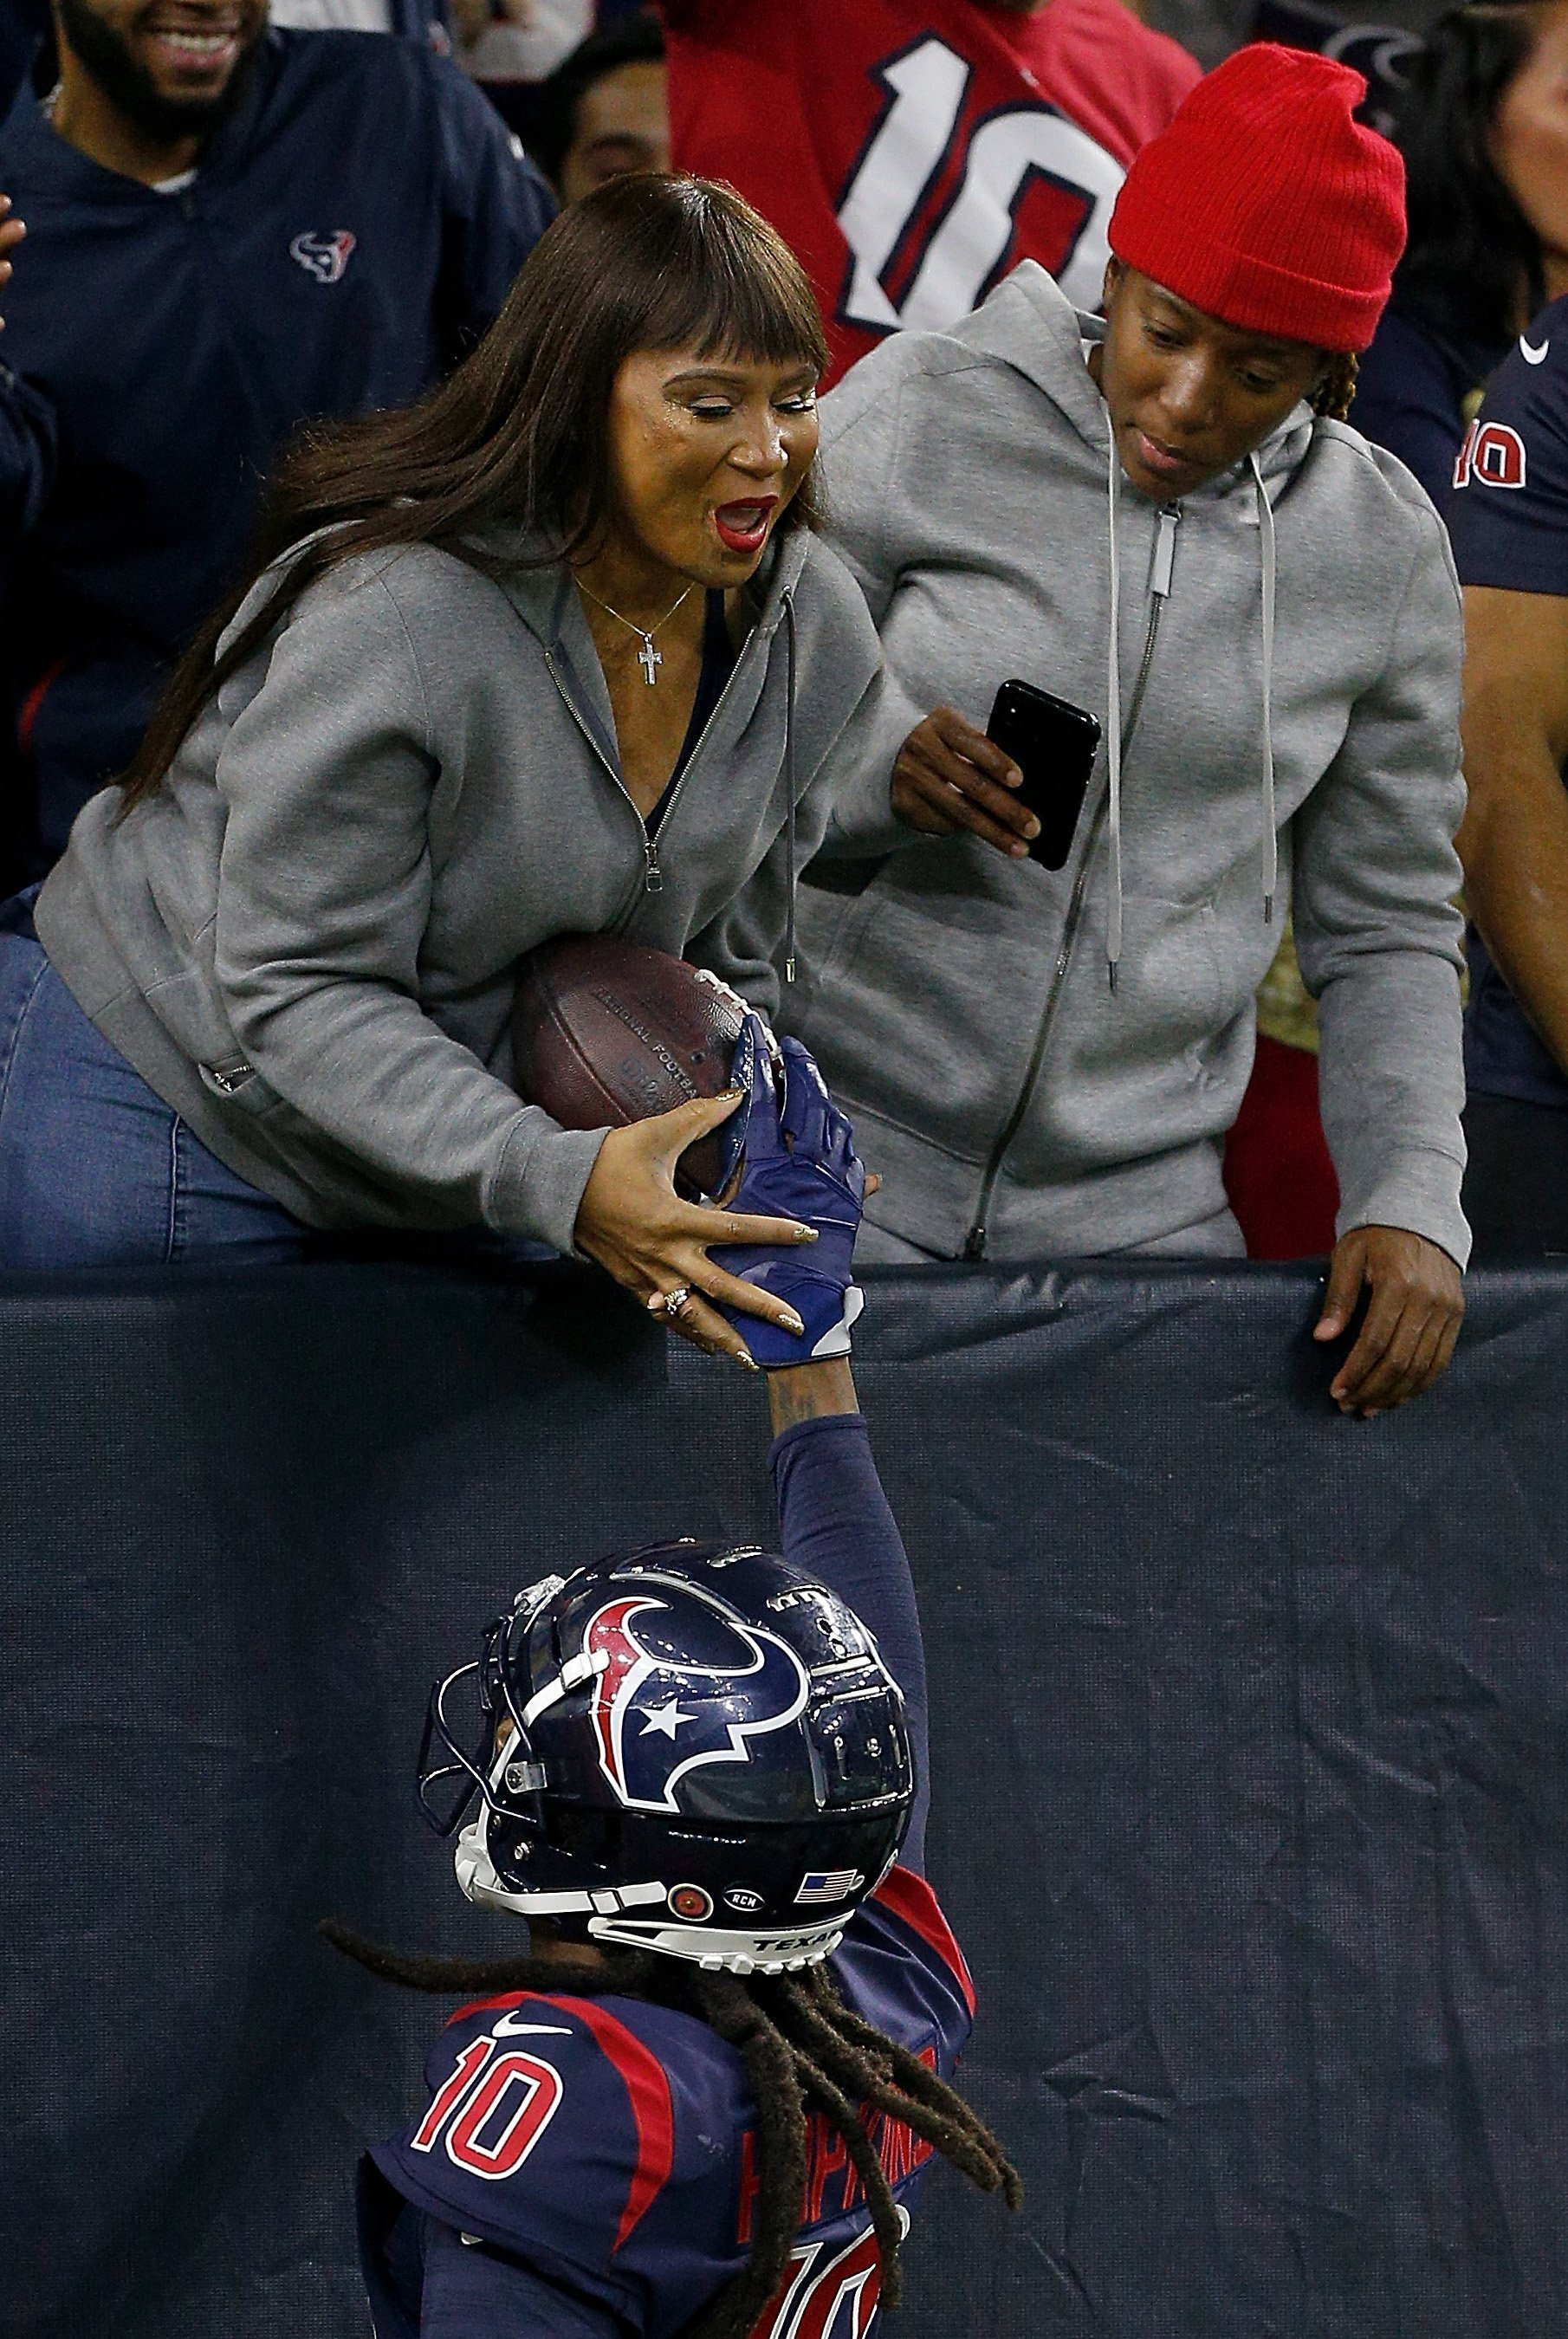 DeAndre Hopkins #10 of the Houston Texans hand the ball to his mother, Sabrina Greenlee after a touchdown in the second quarter over the Indianapolis Colts on November 21, 2019 | Photo: GettyImages